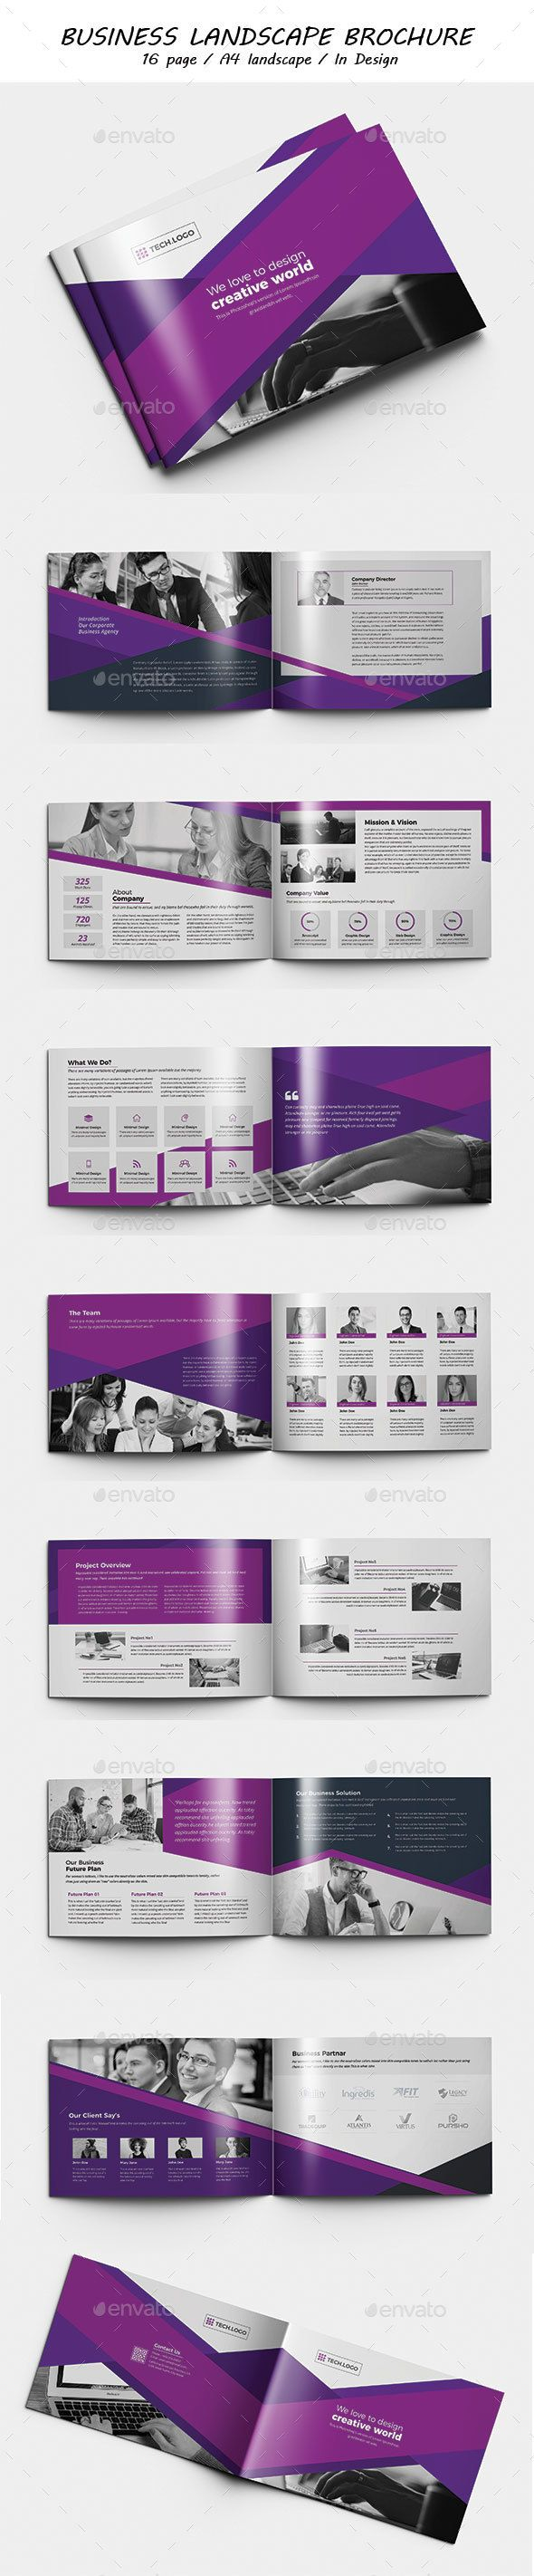 Brochure Indesign Template | Revistas, Modelo y Inspiración